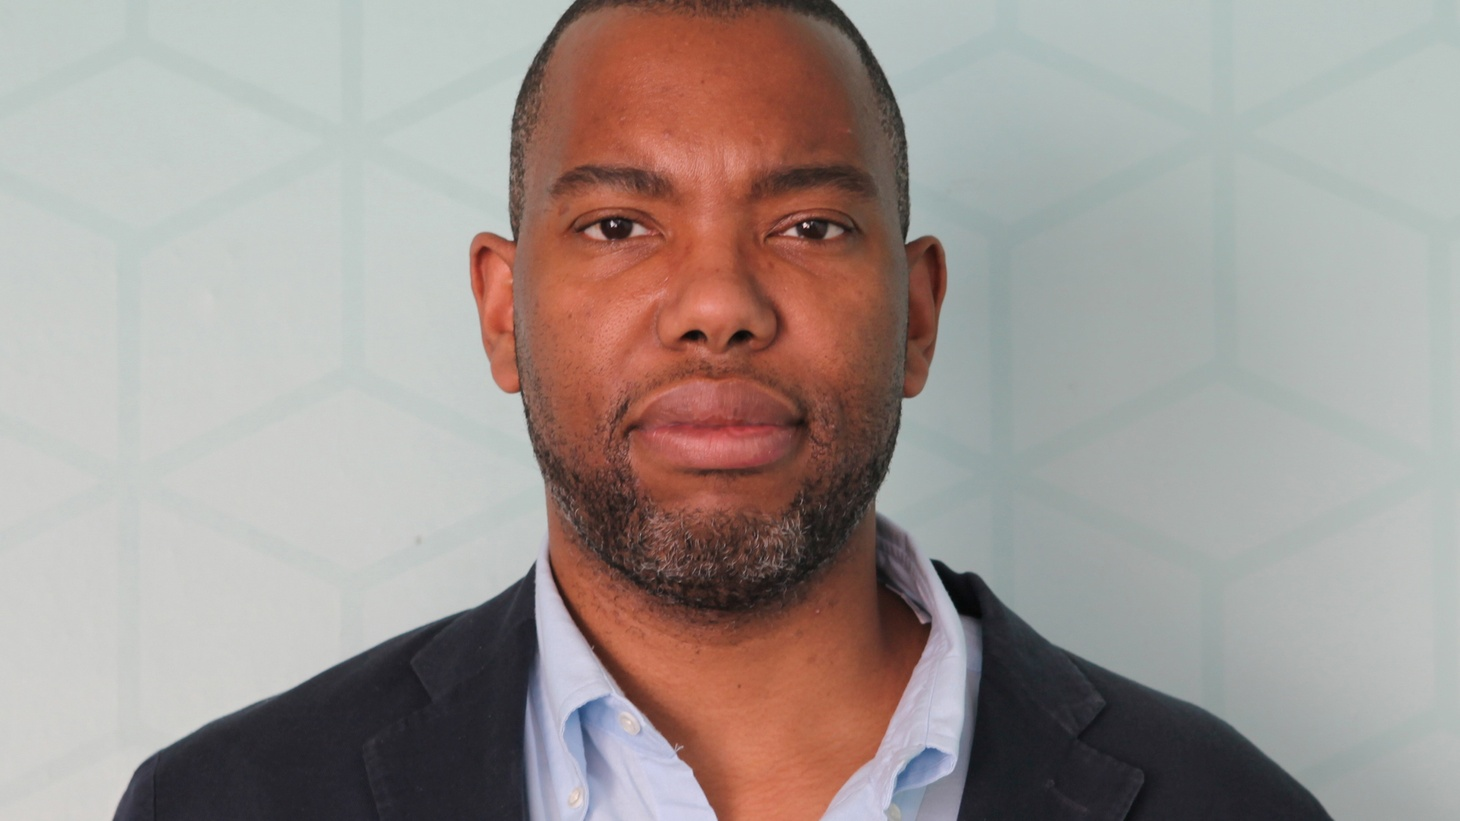 Ta-Nehisi Coates is a public intellectual who does not shy away from uncomfortable conversations. He's the author of  Between the World and Me , and winner this year of the National Book Award for nonfiction. He's a national correspondent for the  Atlantic  magazine and a MacArthur fellow.